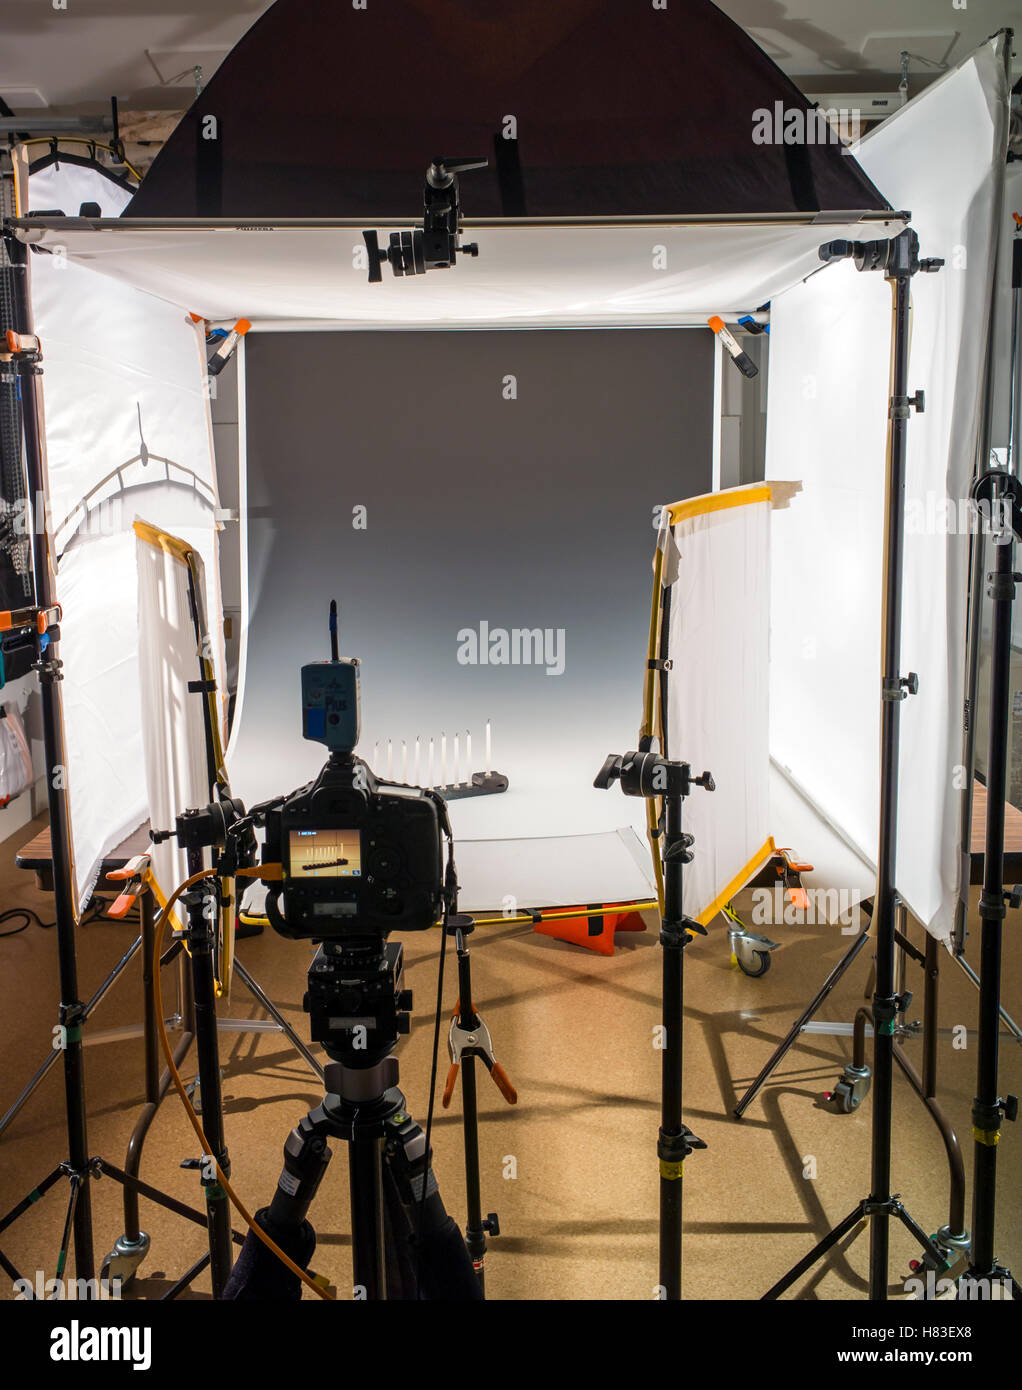 Lighting and camera equipment in a commercial photography studio. - Stock Image